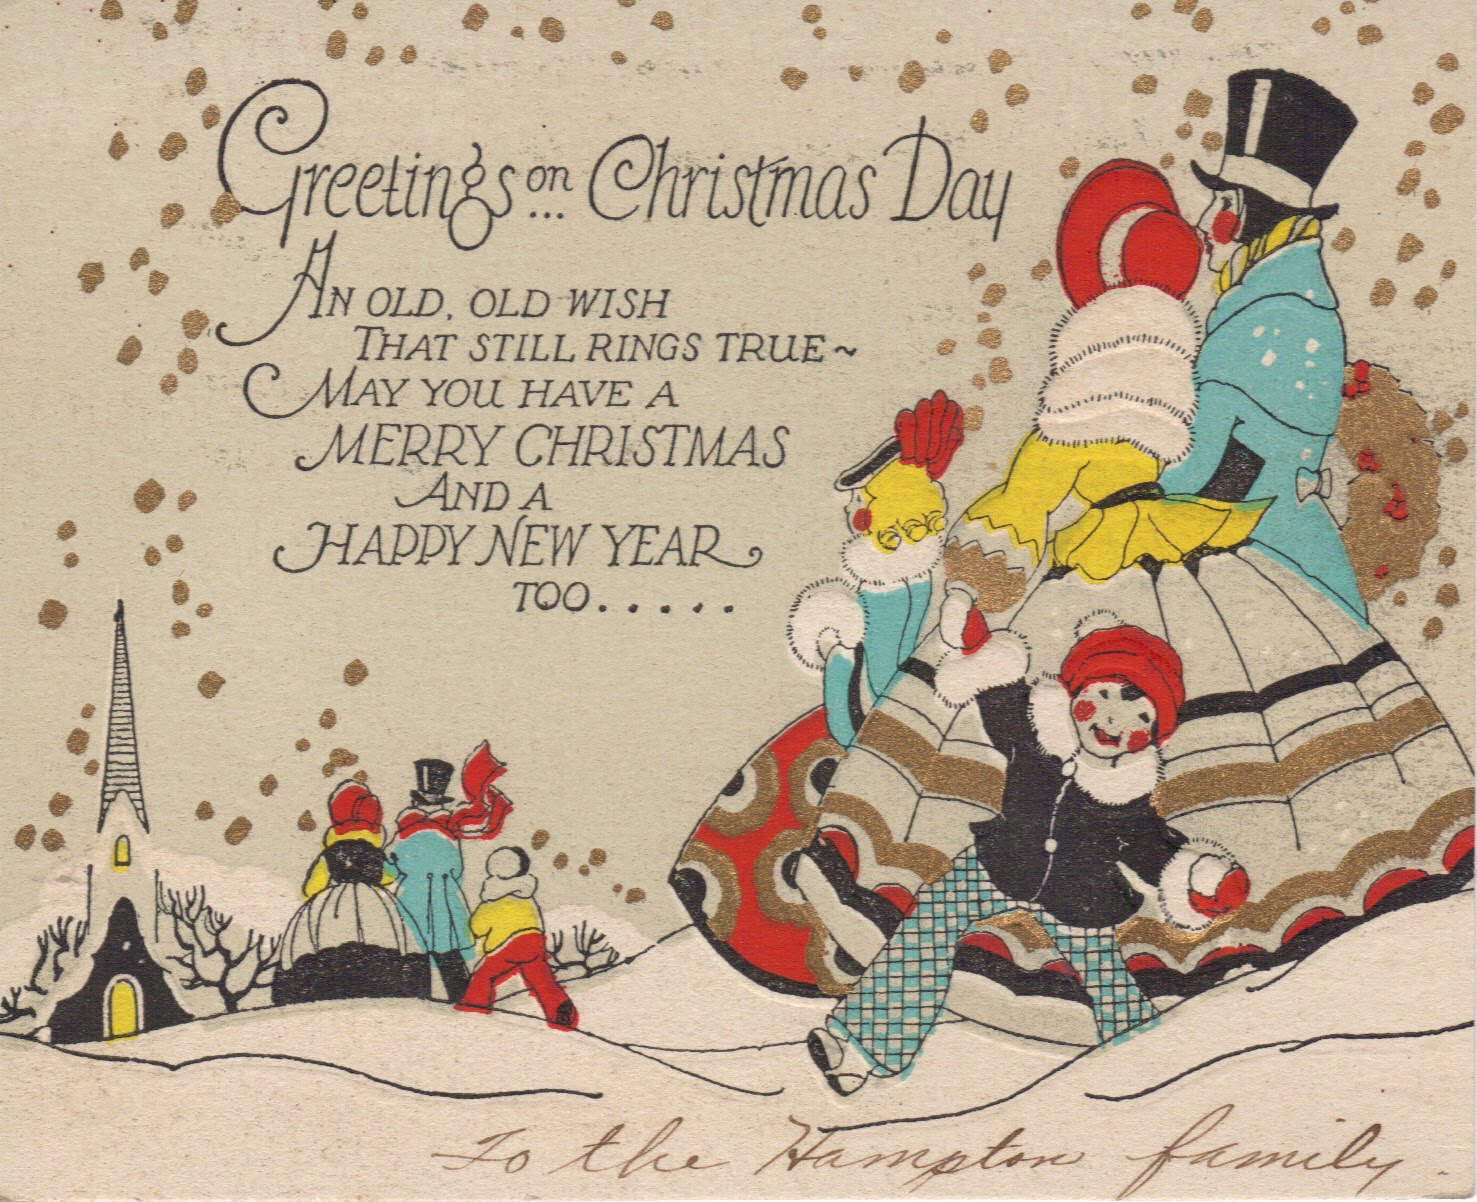 Bloody Pit of Rod: Art Deco Christmas Cards